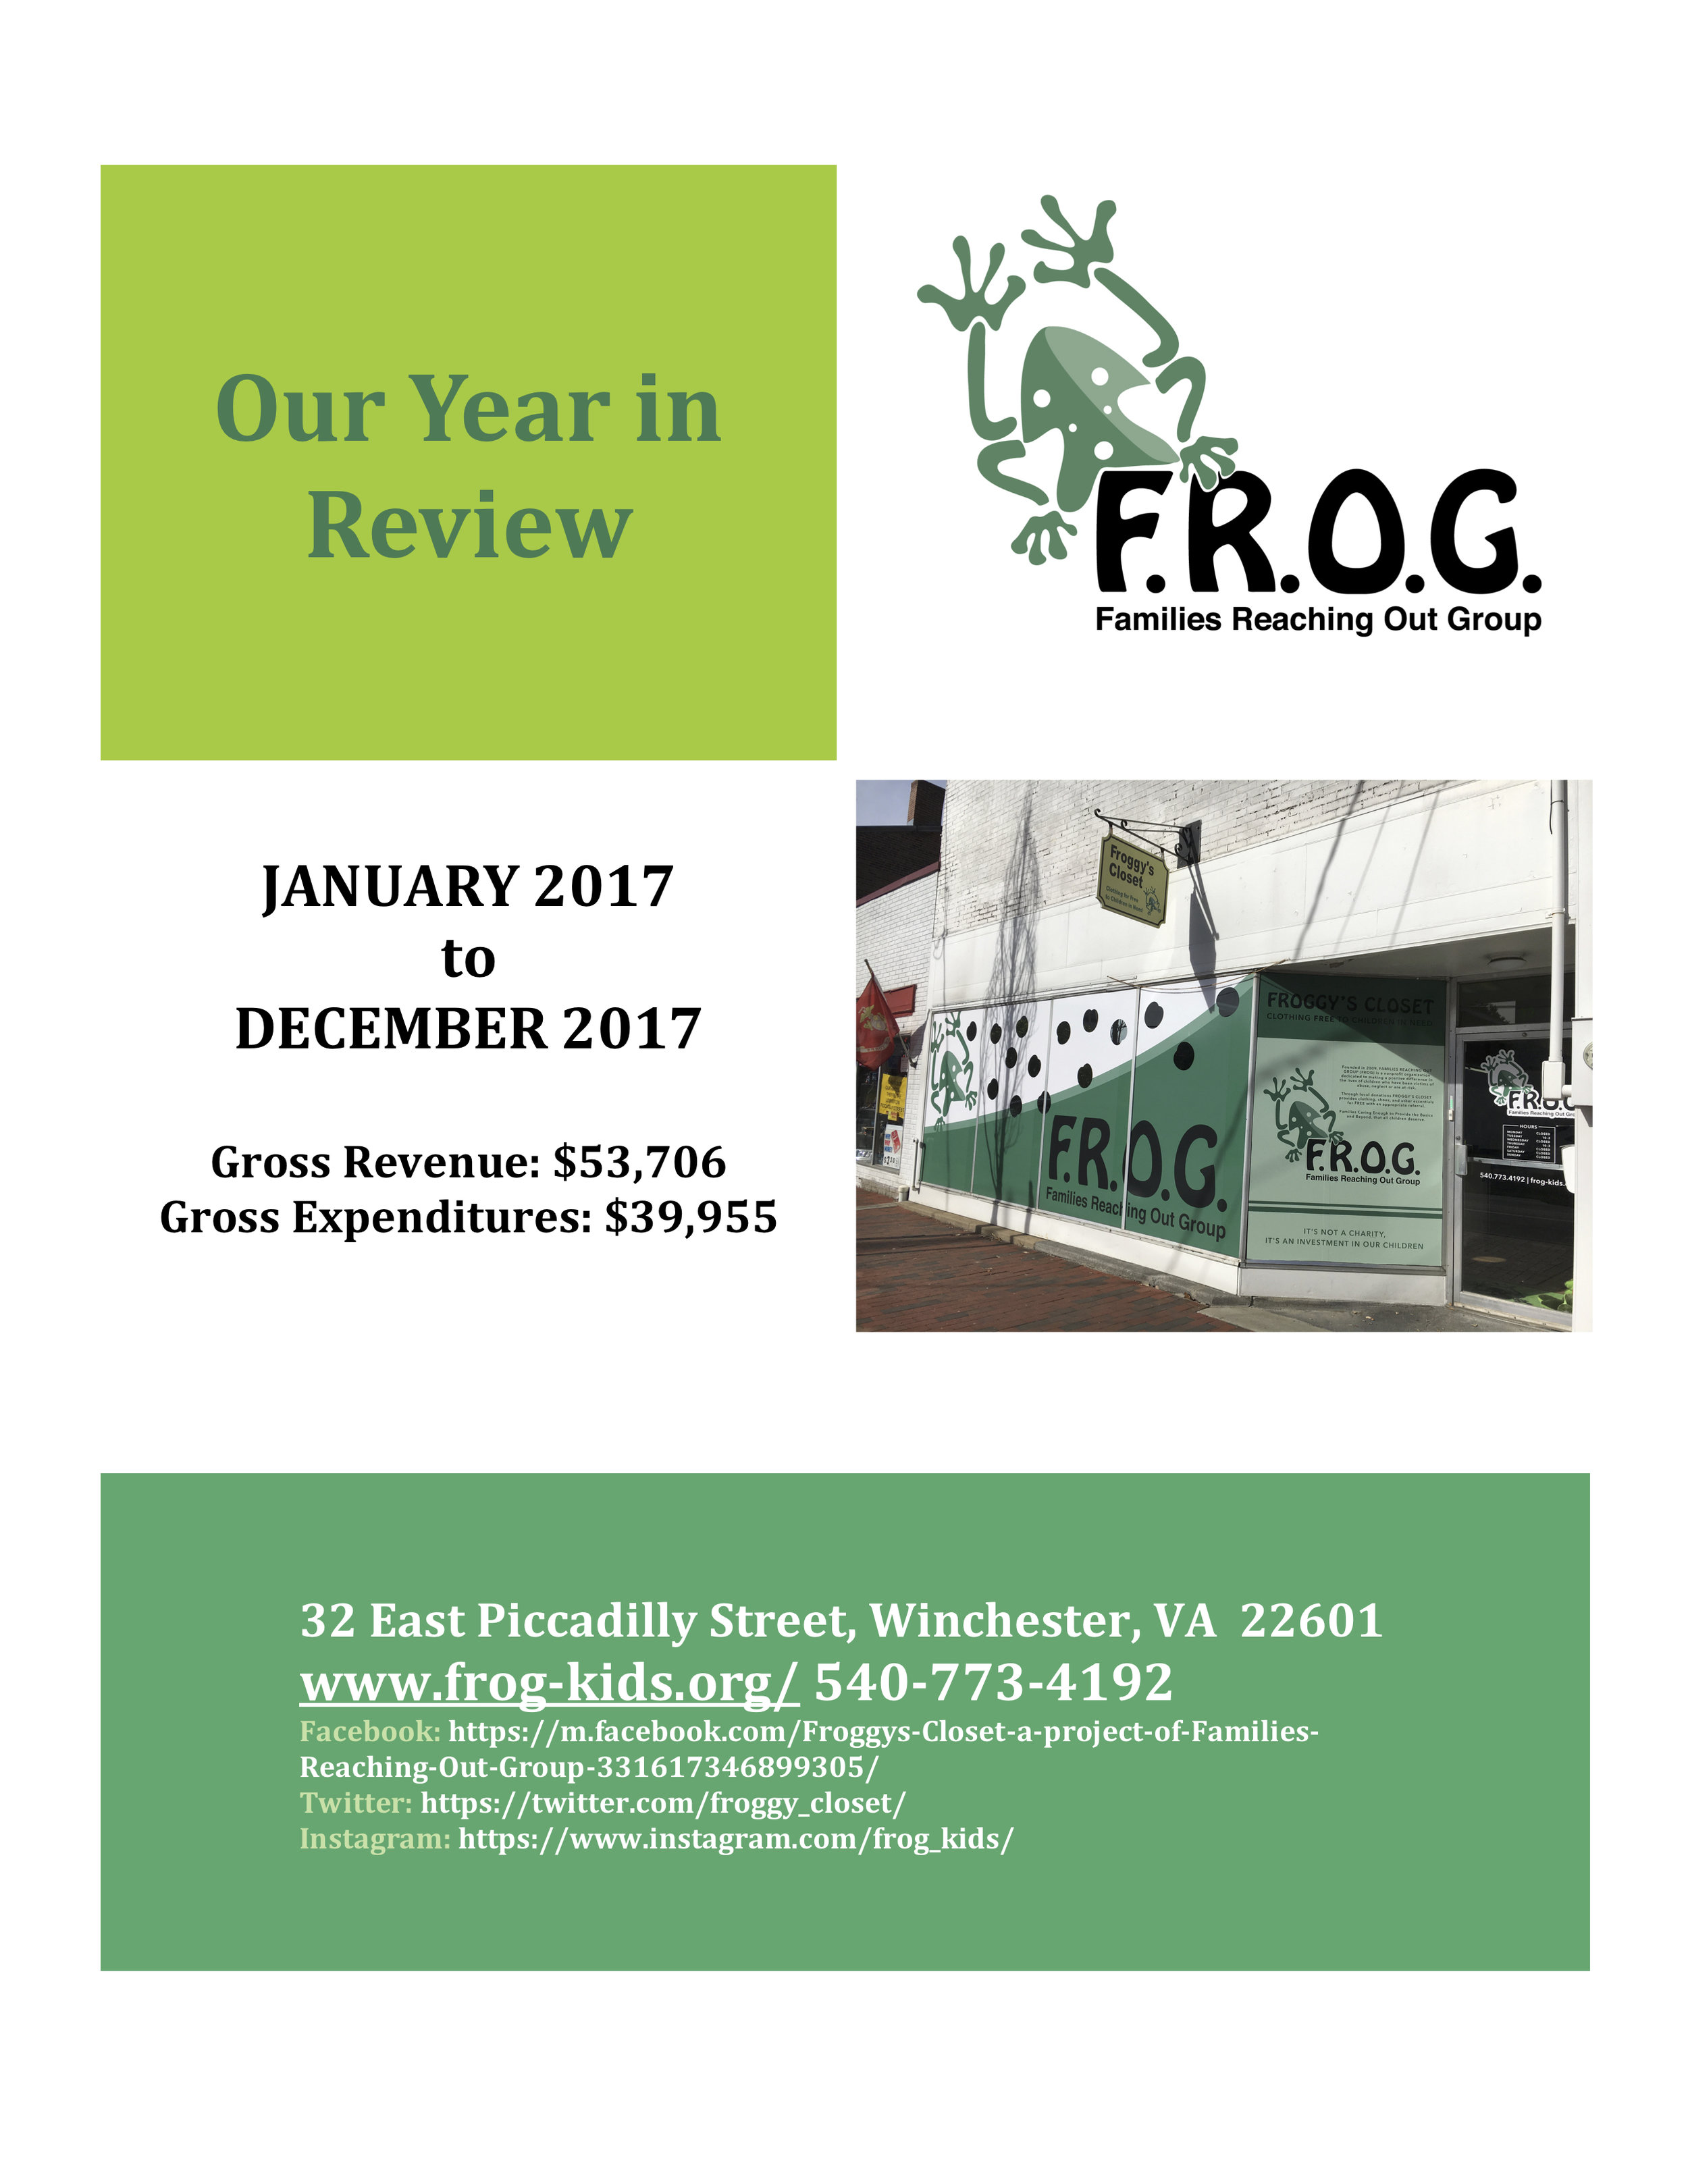 FROG-Our Year in Review-2017 Page 1.jpg